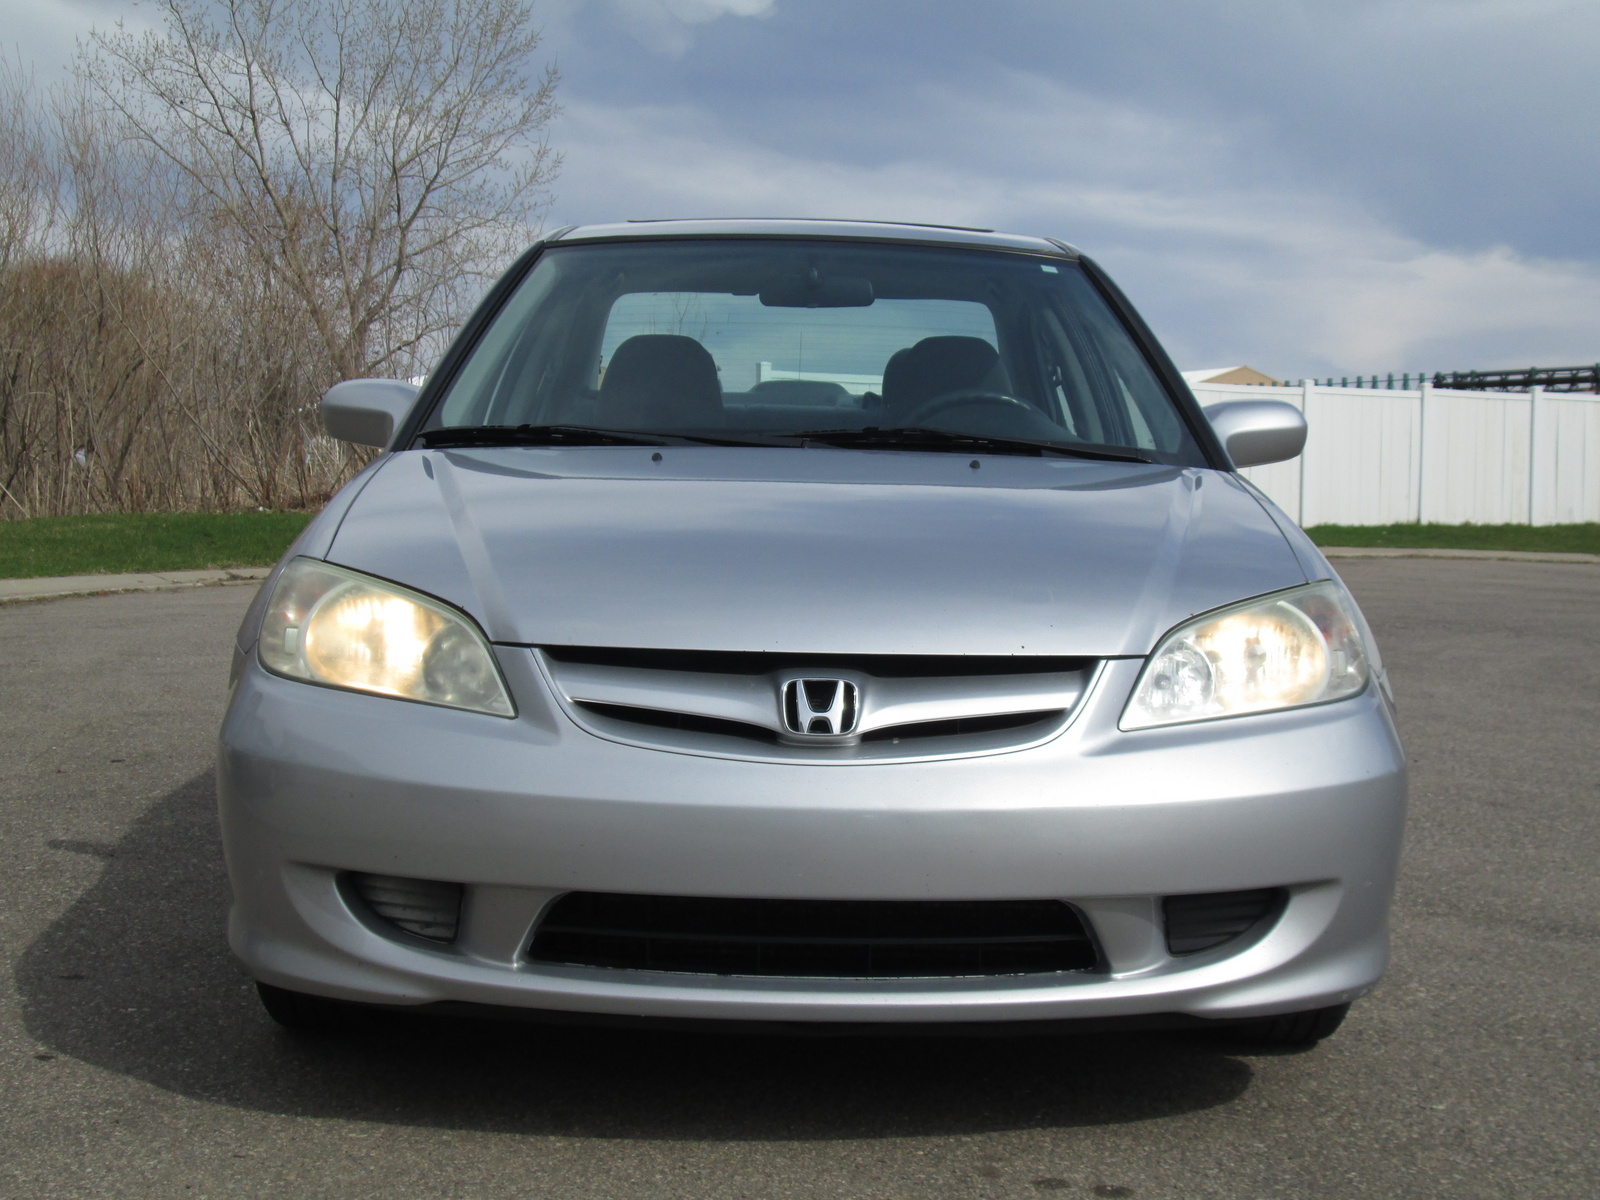 2004 Honda Civic - Pictures - CarGurus